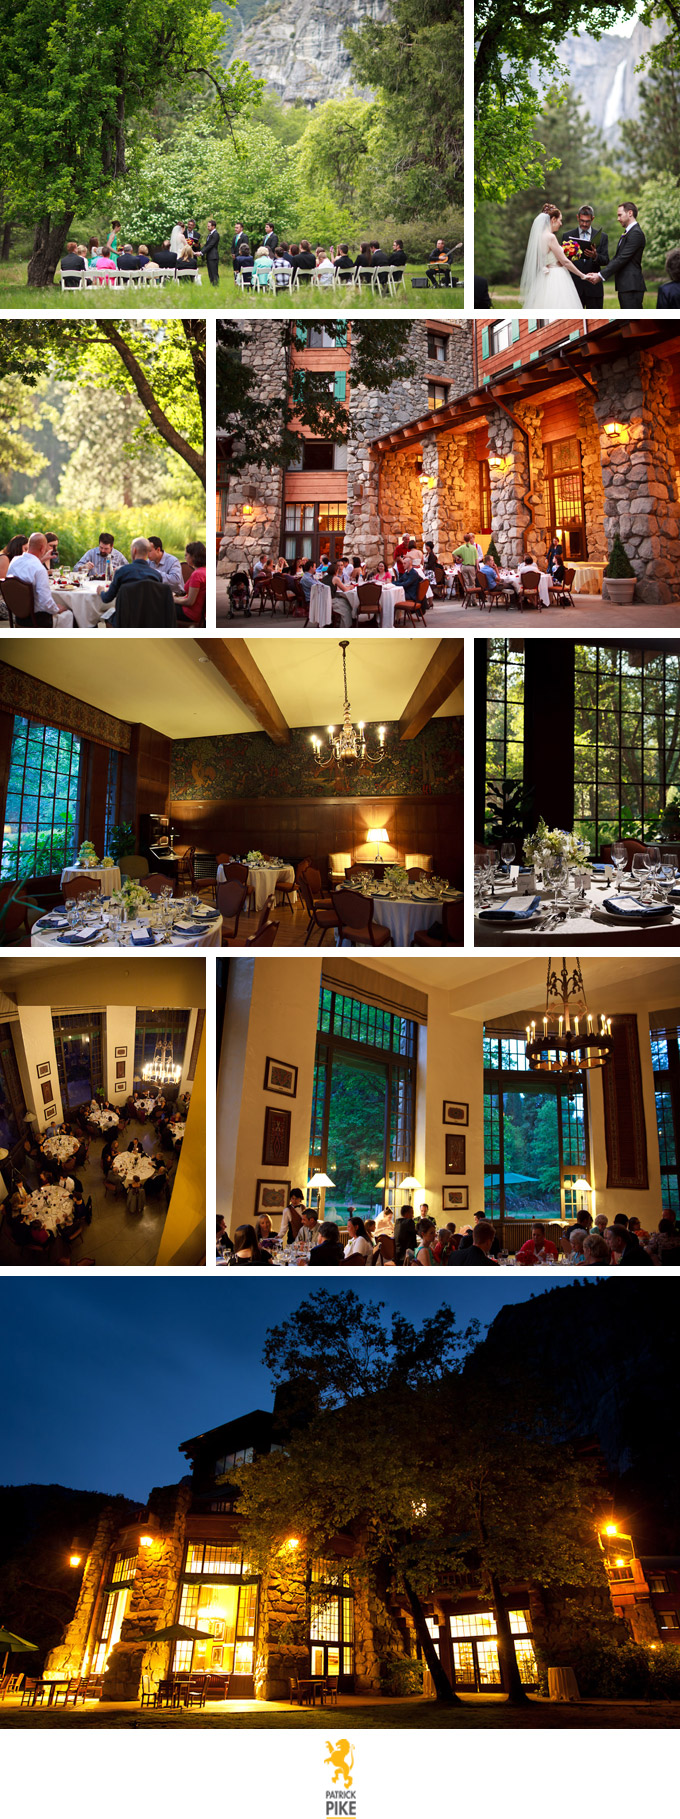 Weddings at the Ahwahnee Hotel in Yosemite